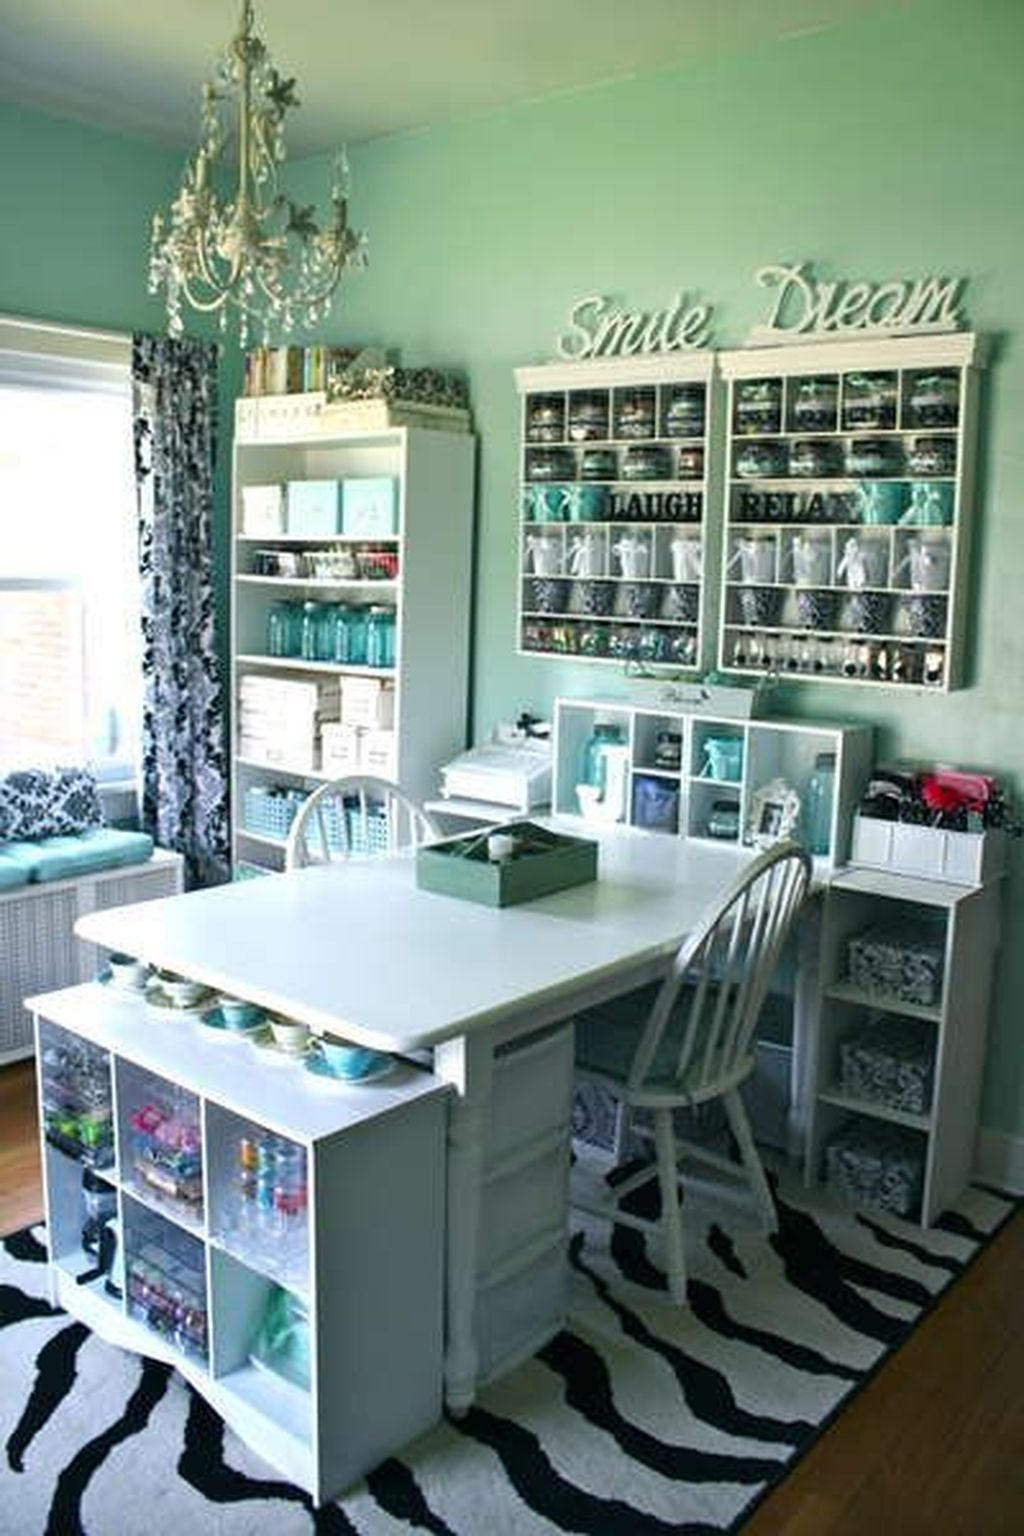 45 Gorgeous Colourful Organizing Sewing Room Ideas For Inspiration images